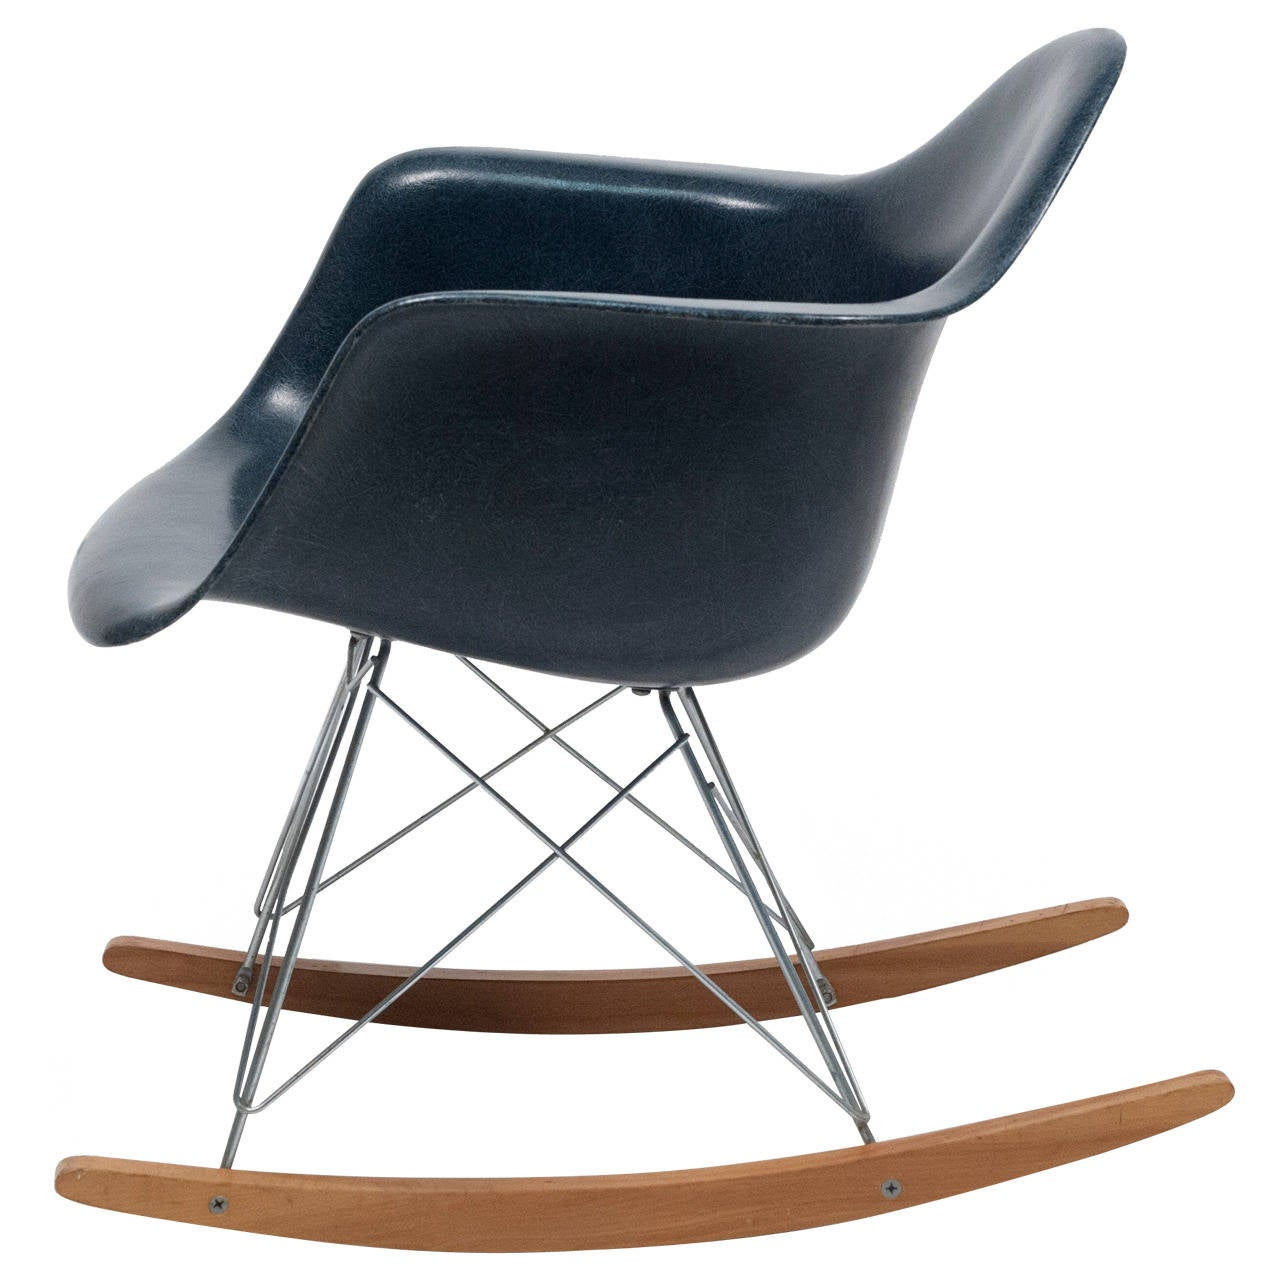 Eames Navy Blue Shell Herman Miller Rocking Chair, 1962 For Sale